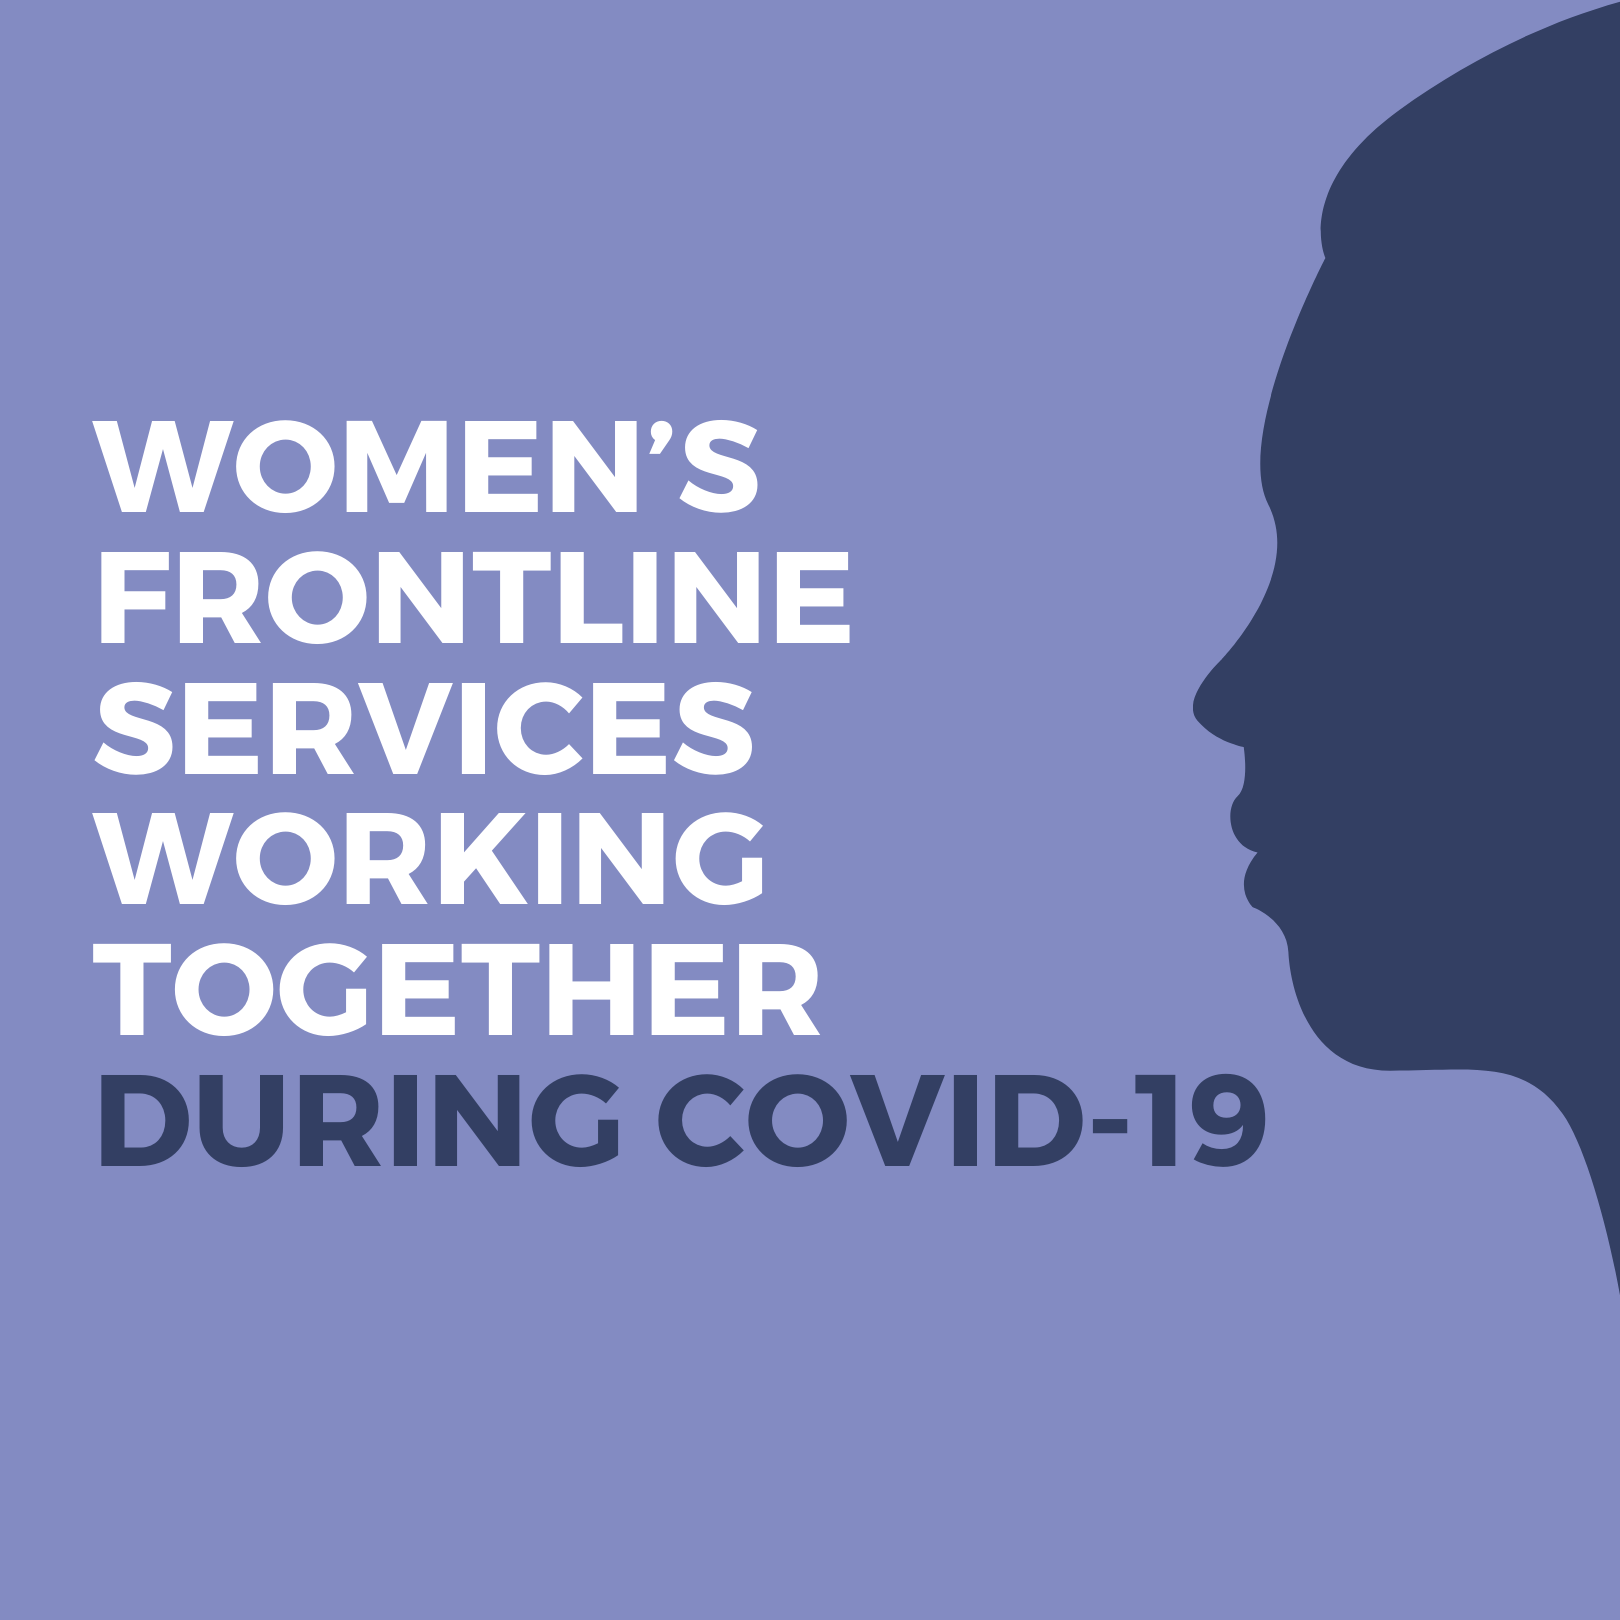 YWCA Canberra: Women's frontline services working together ...